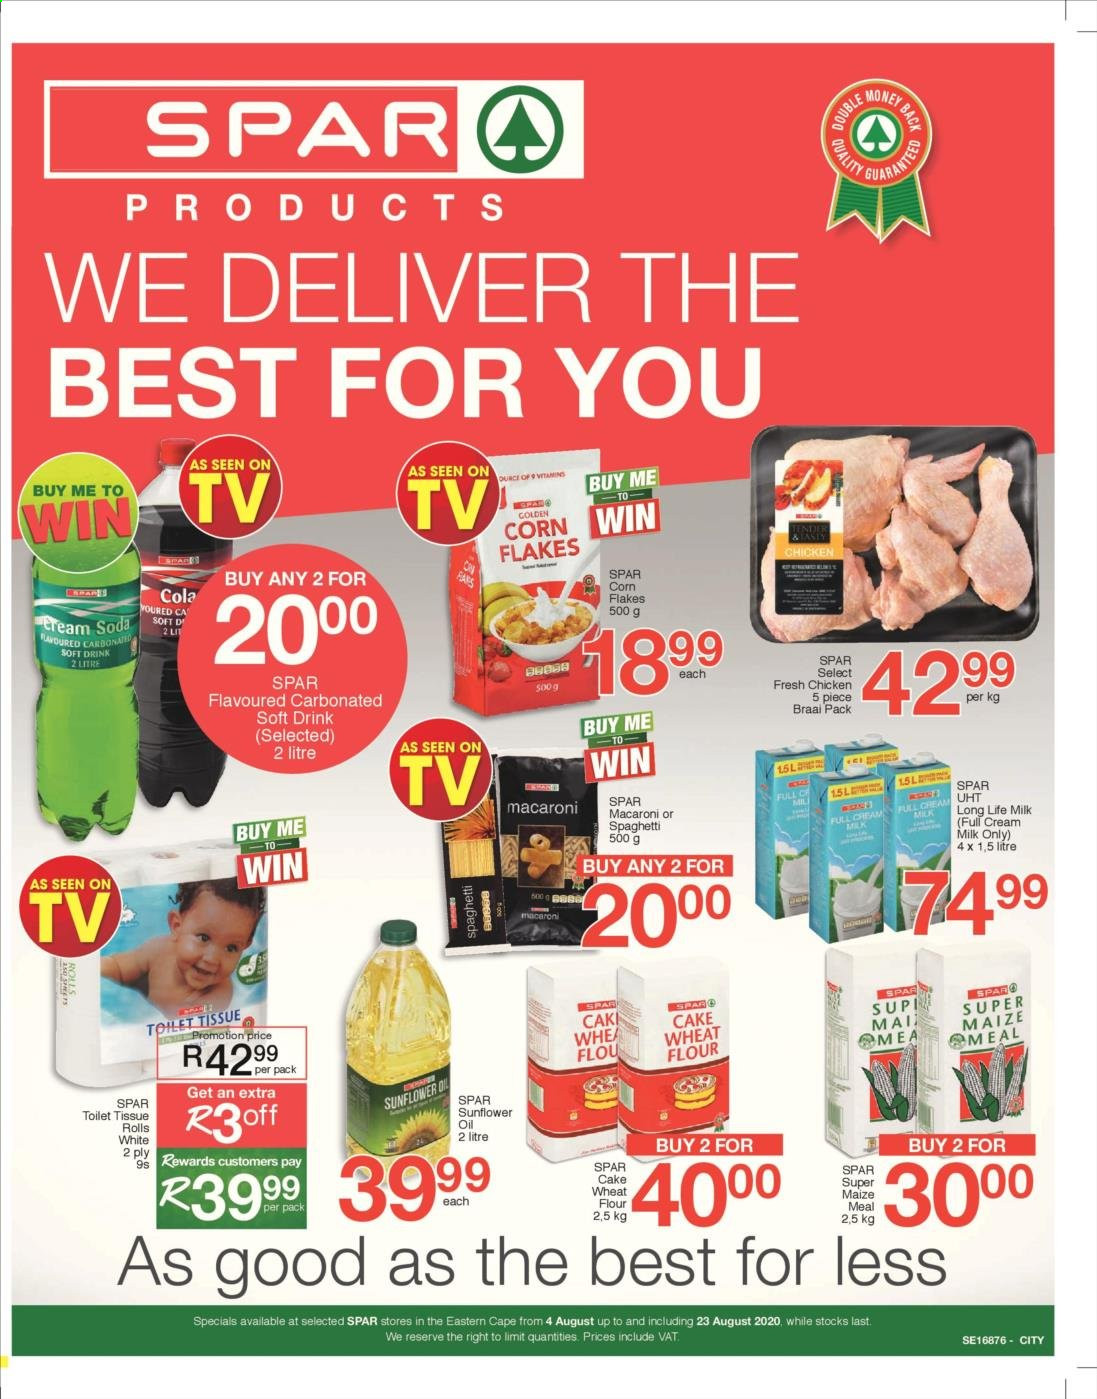 SPAR catalogue  - 08.04.2020 - 08.23.2020 - Sales products - corn, cream, flour, milk, spaghetti, sunflower oil, wheat flour, chicken, soda, macaroni, corn flakes, flakes, toilet tissue, drink, sunflower, rolls, cake wheat flour, long life milk, carbonated soft drink, soft drink. Page 1.